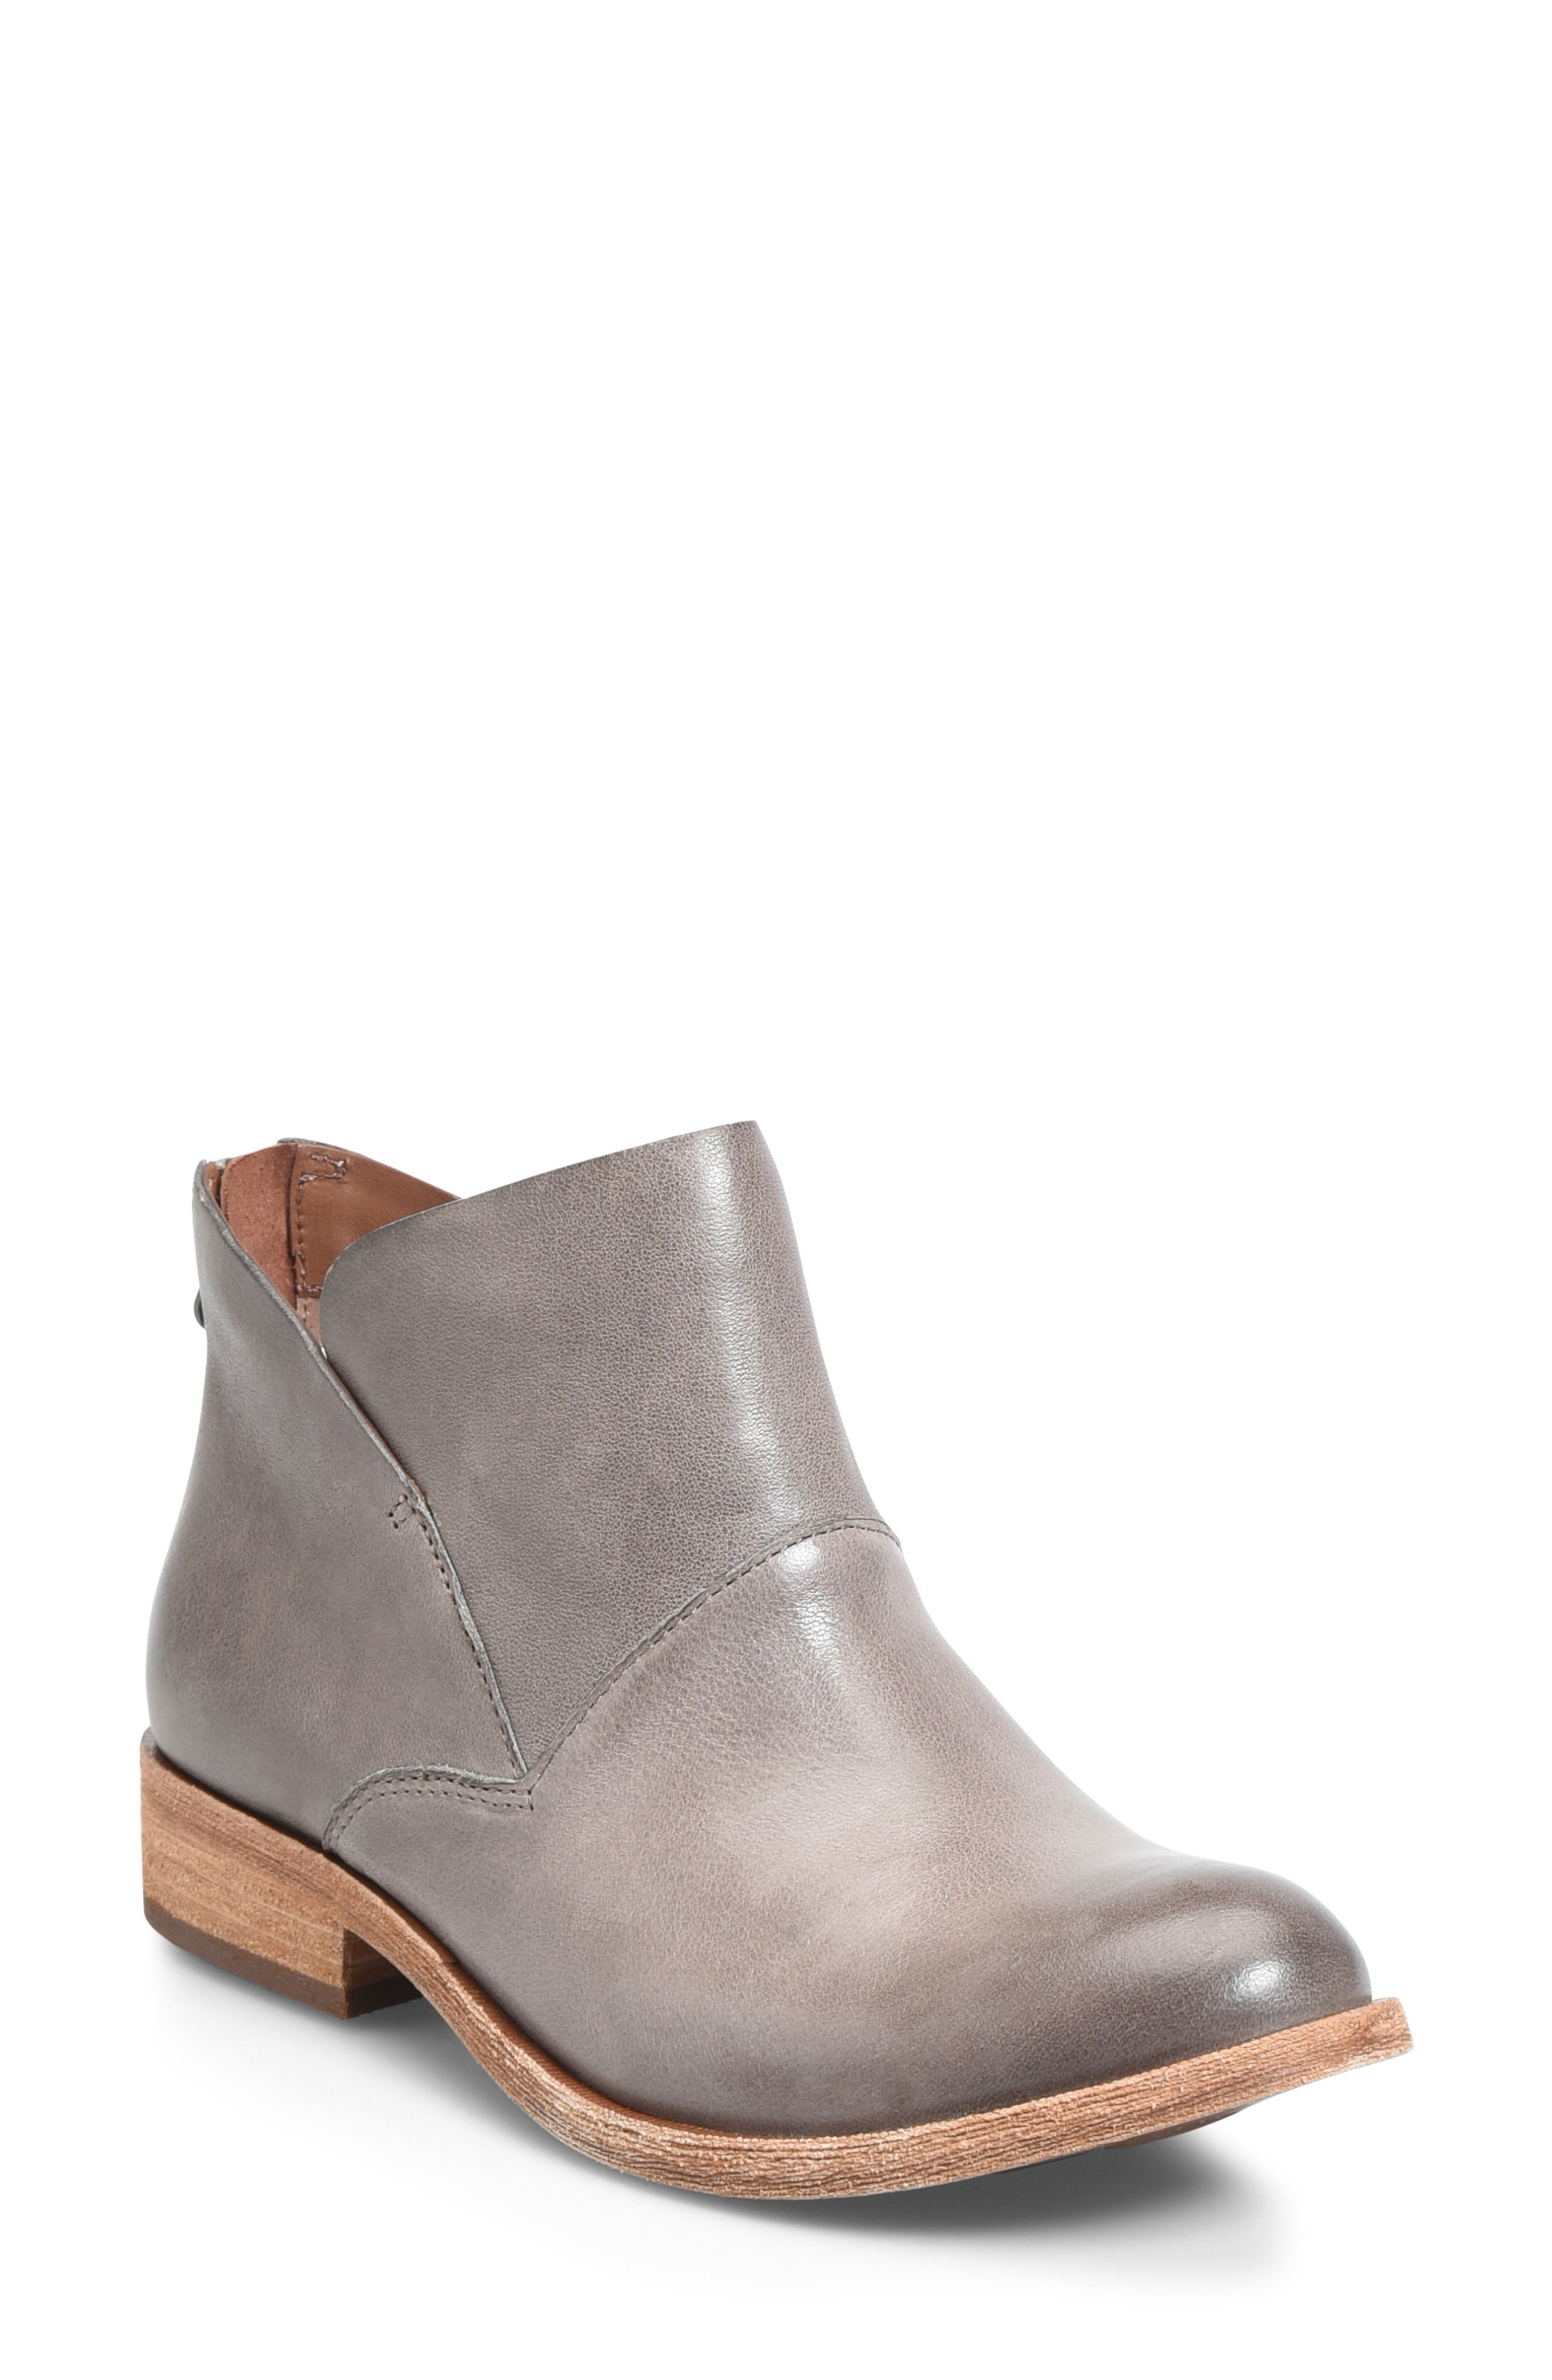 Ryder Ankle Boot,                             Main thumbnail 1, color,                             GREY LEATHER